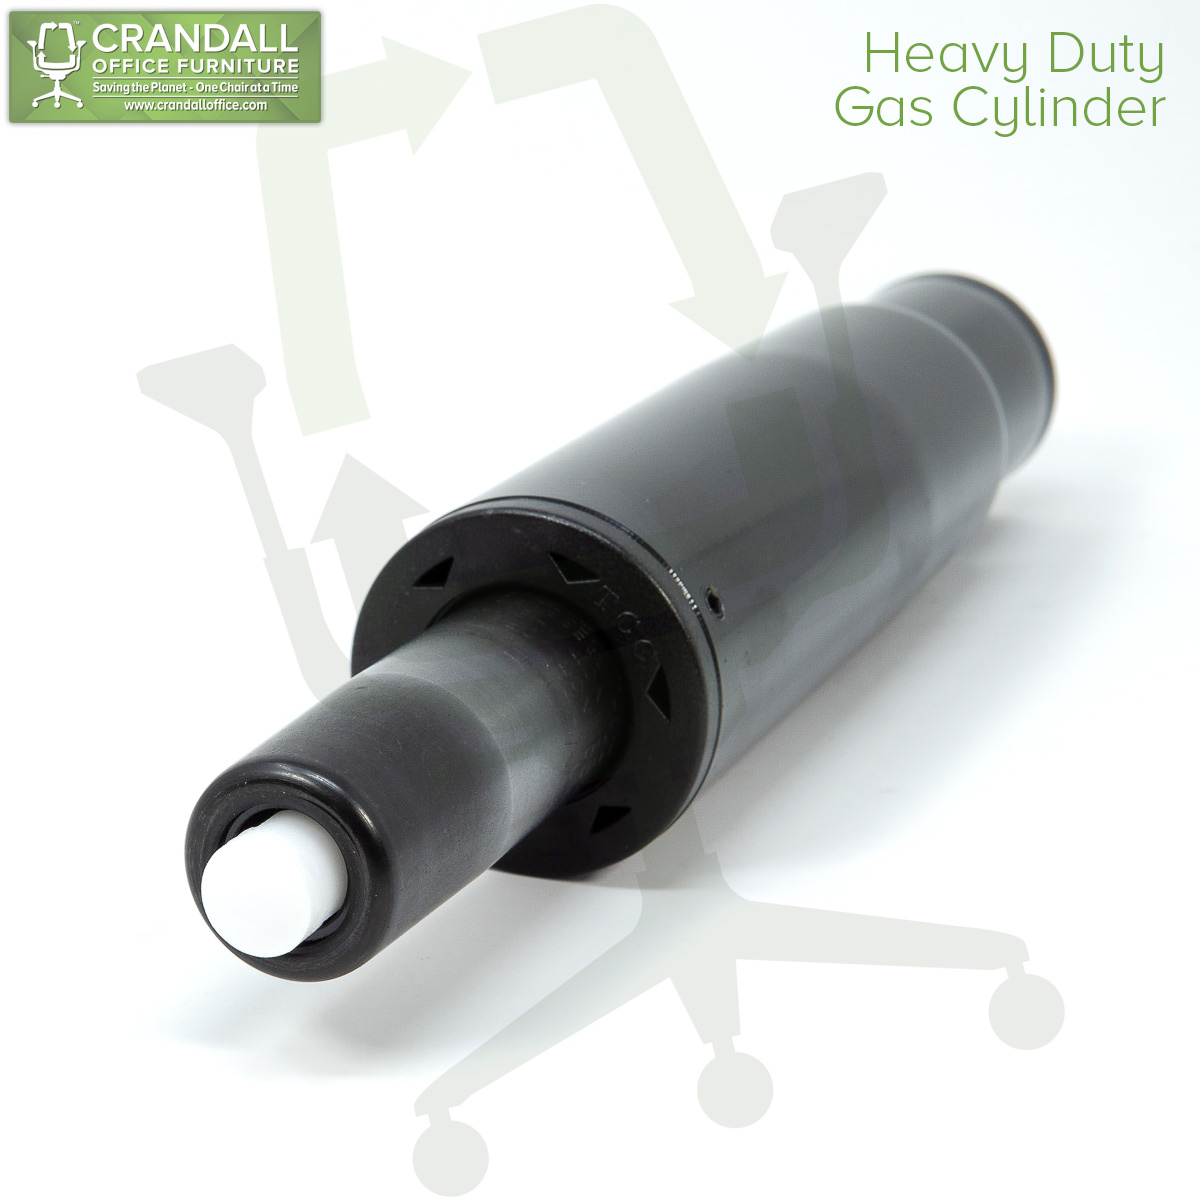 Crandall Office Furniture Aftermarket Heavy Duty Gas Cylinder 0002